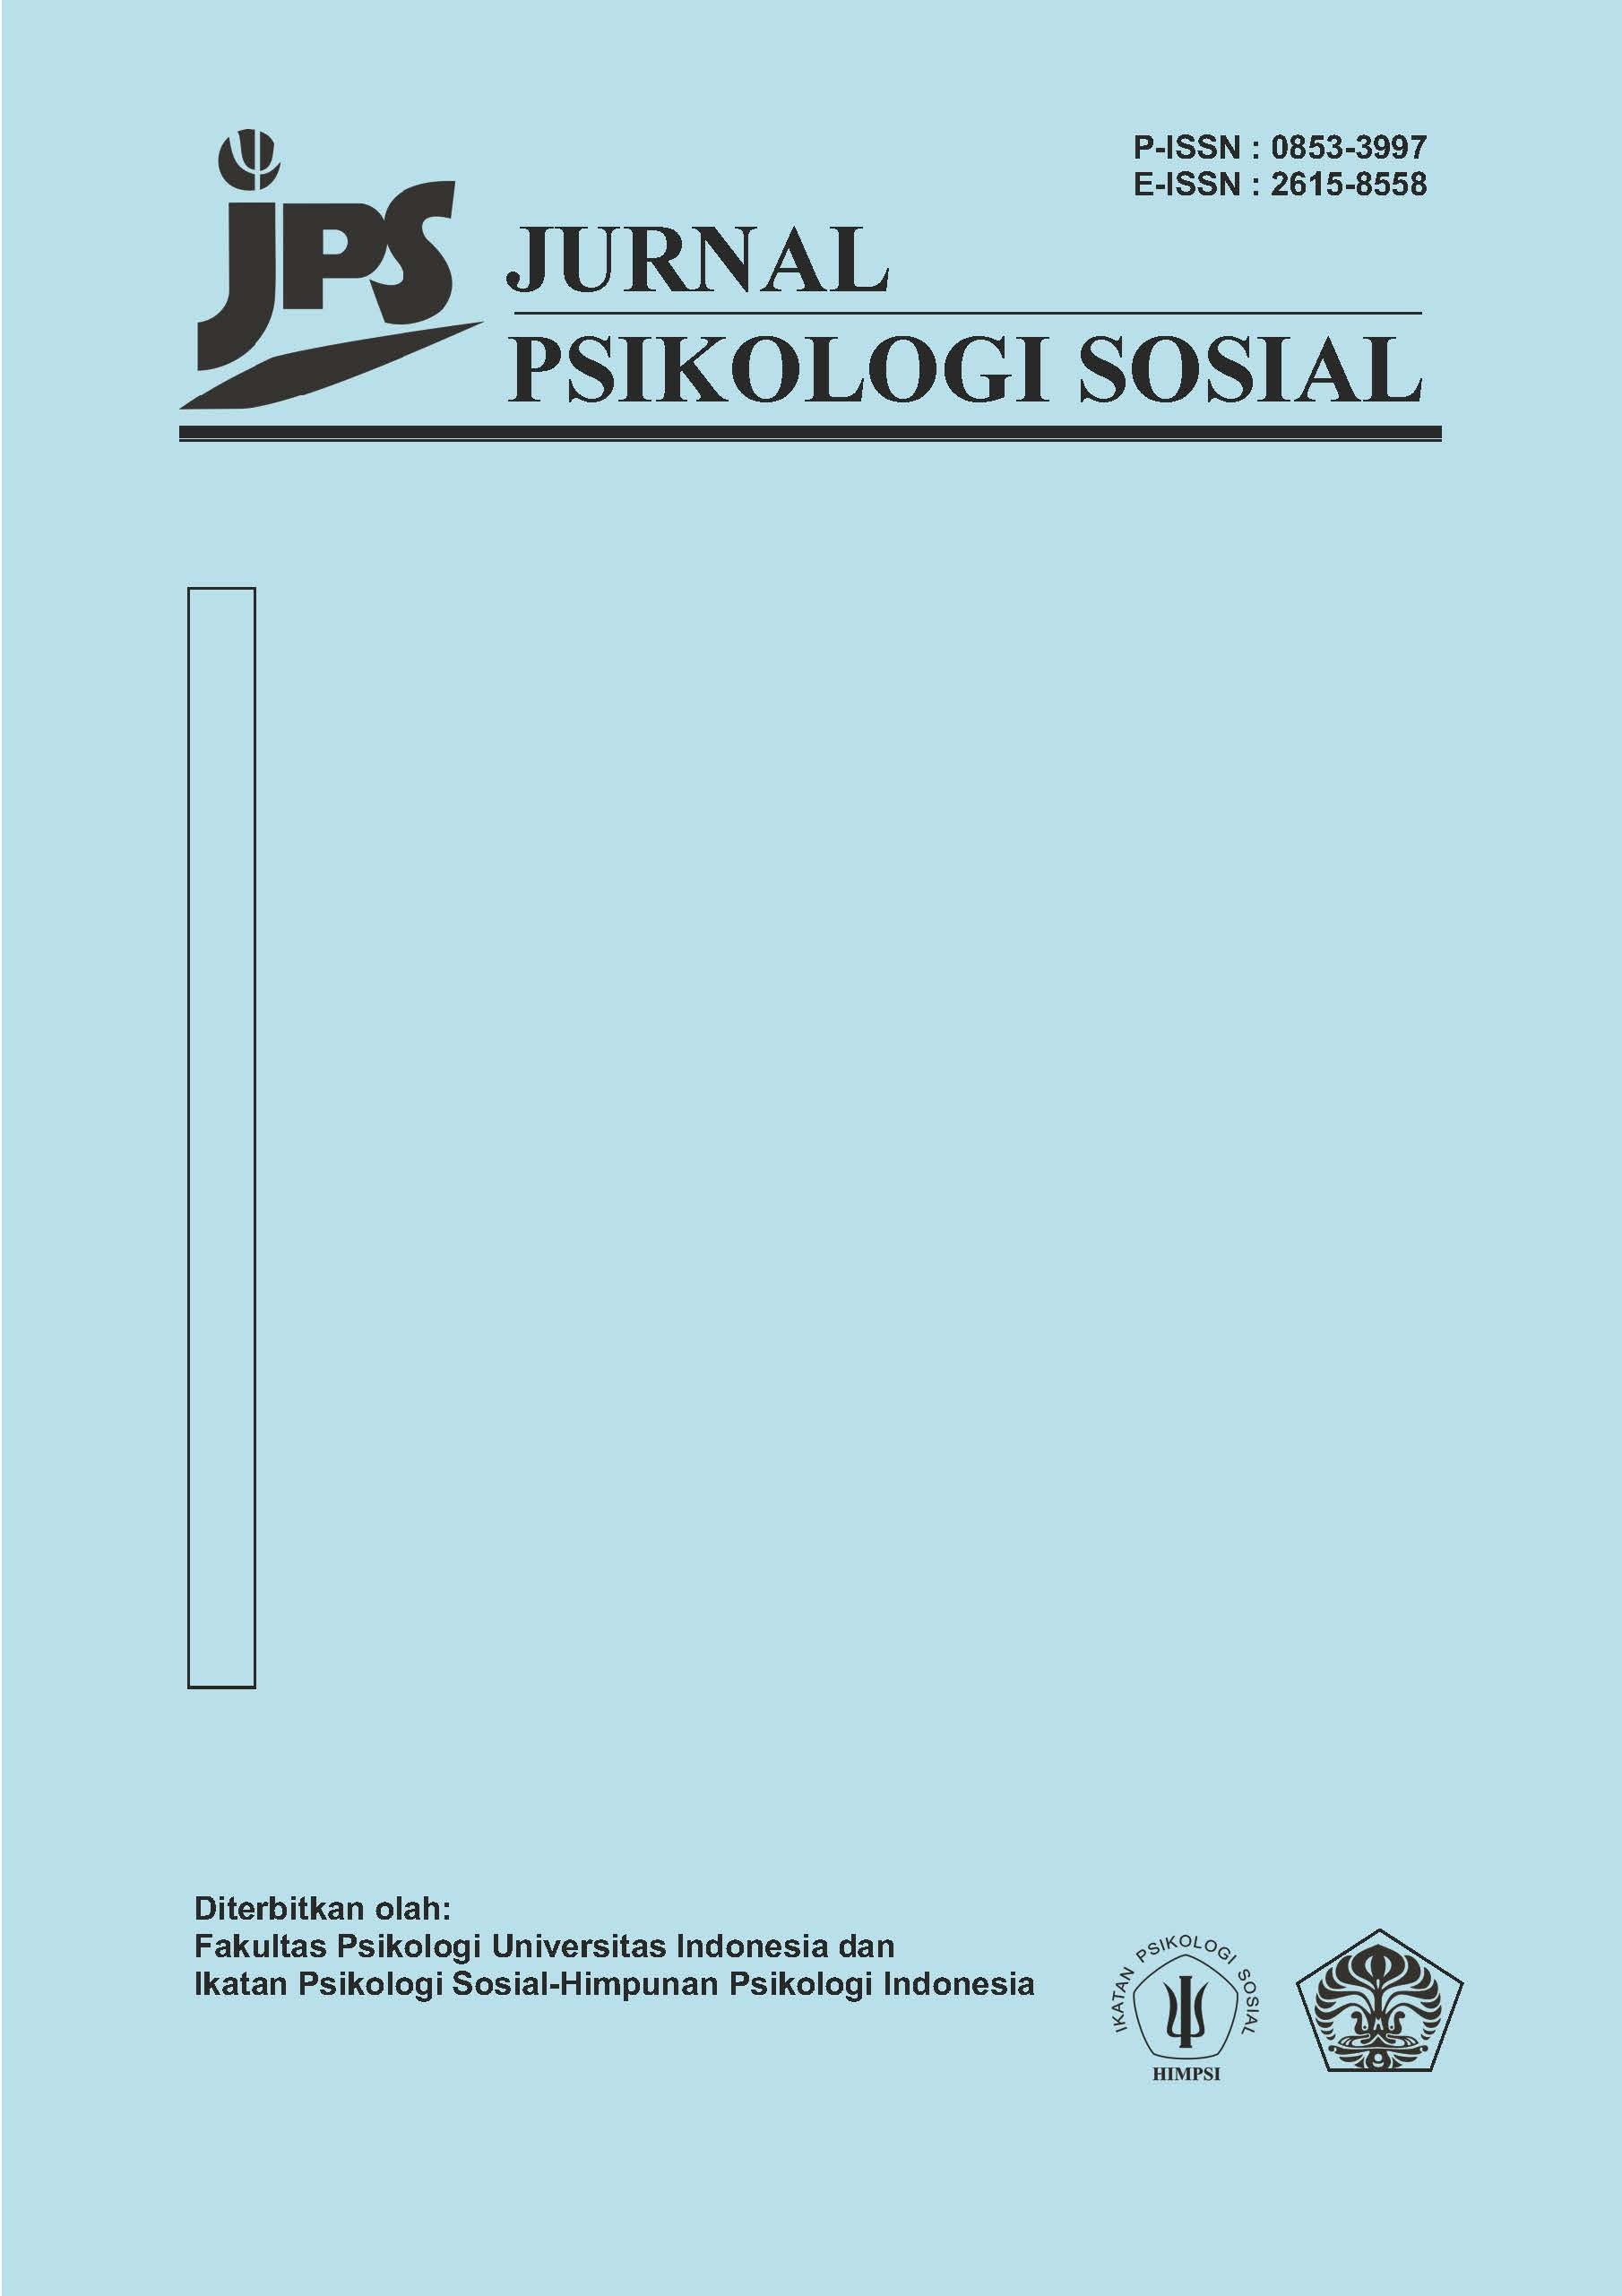 cover_jurnal_psikologi_sosial_copy_2562